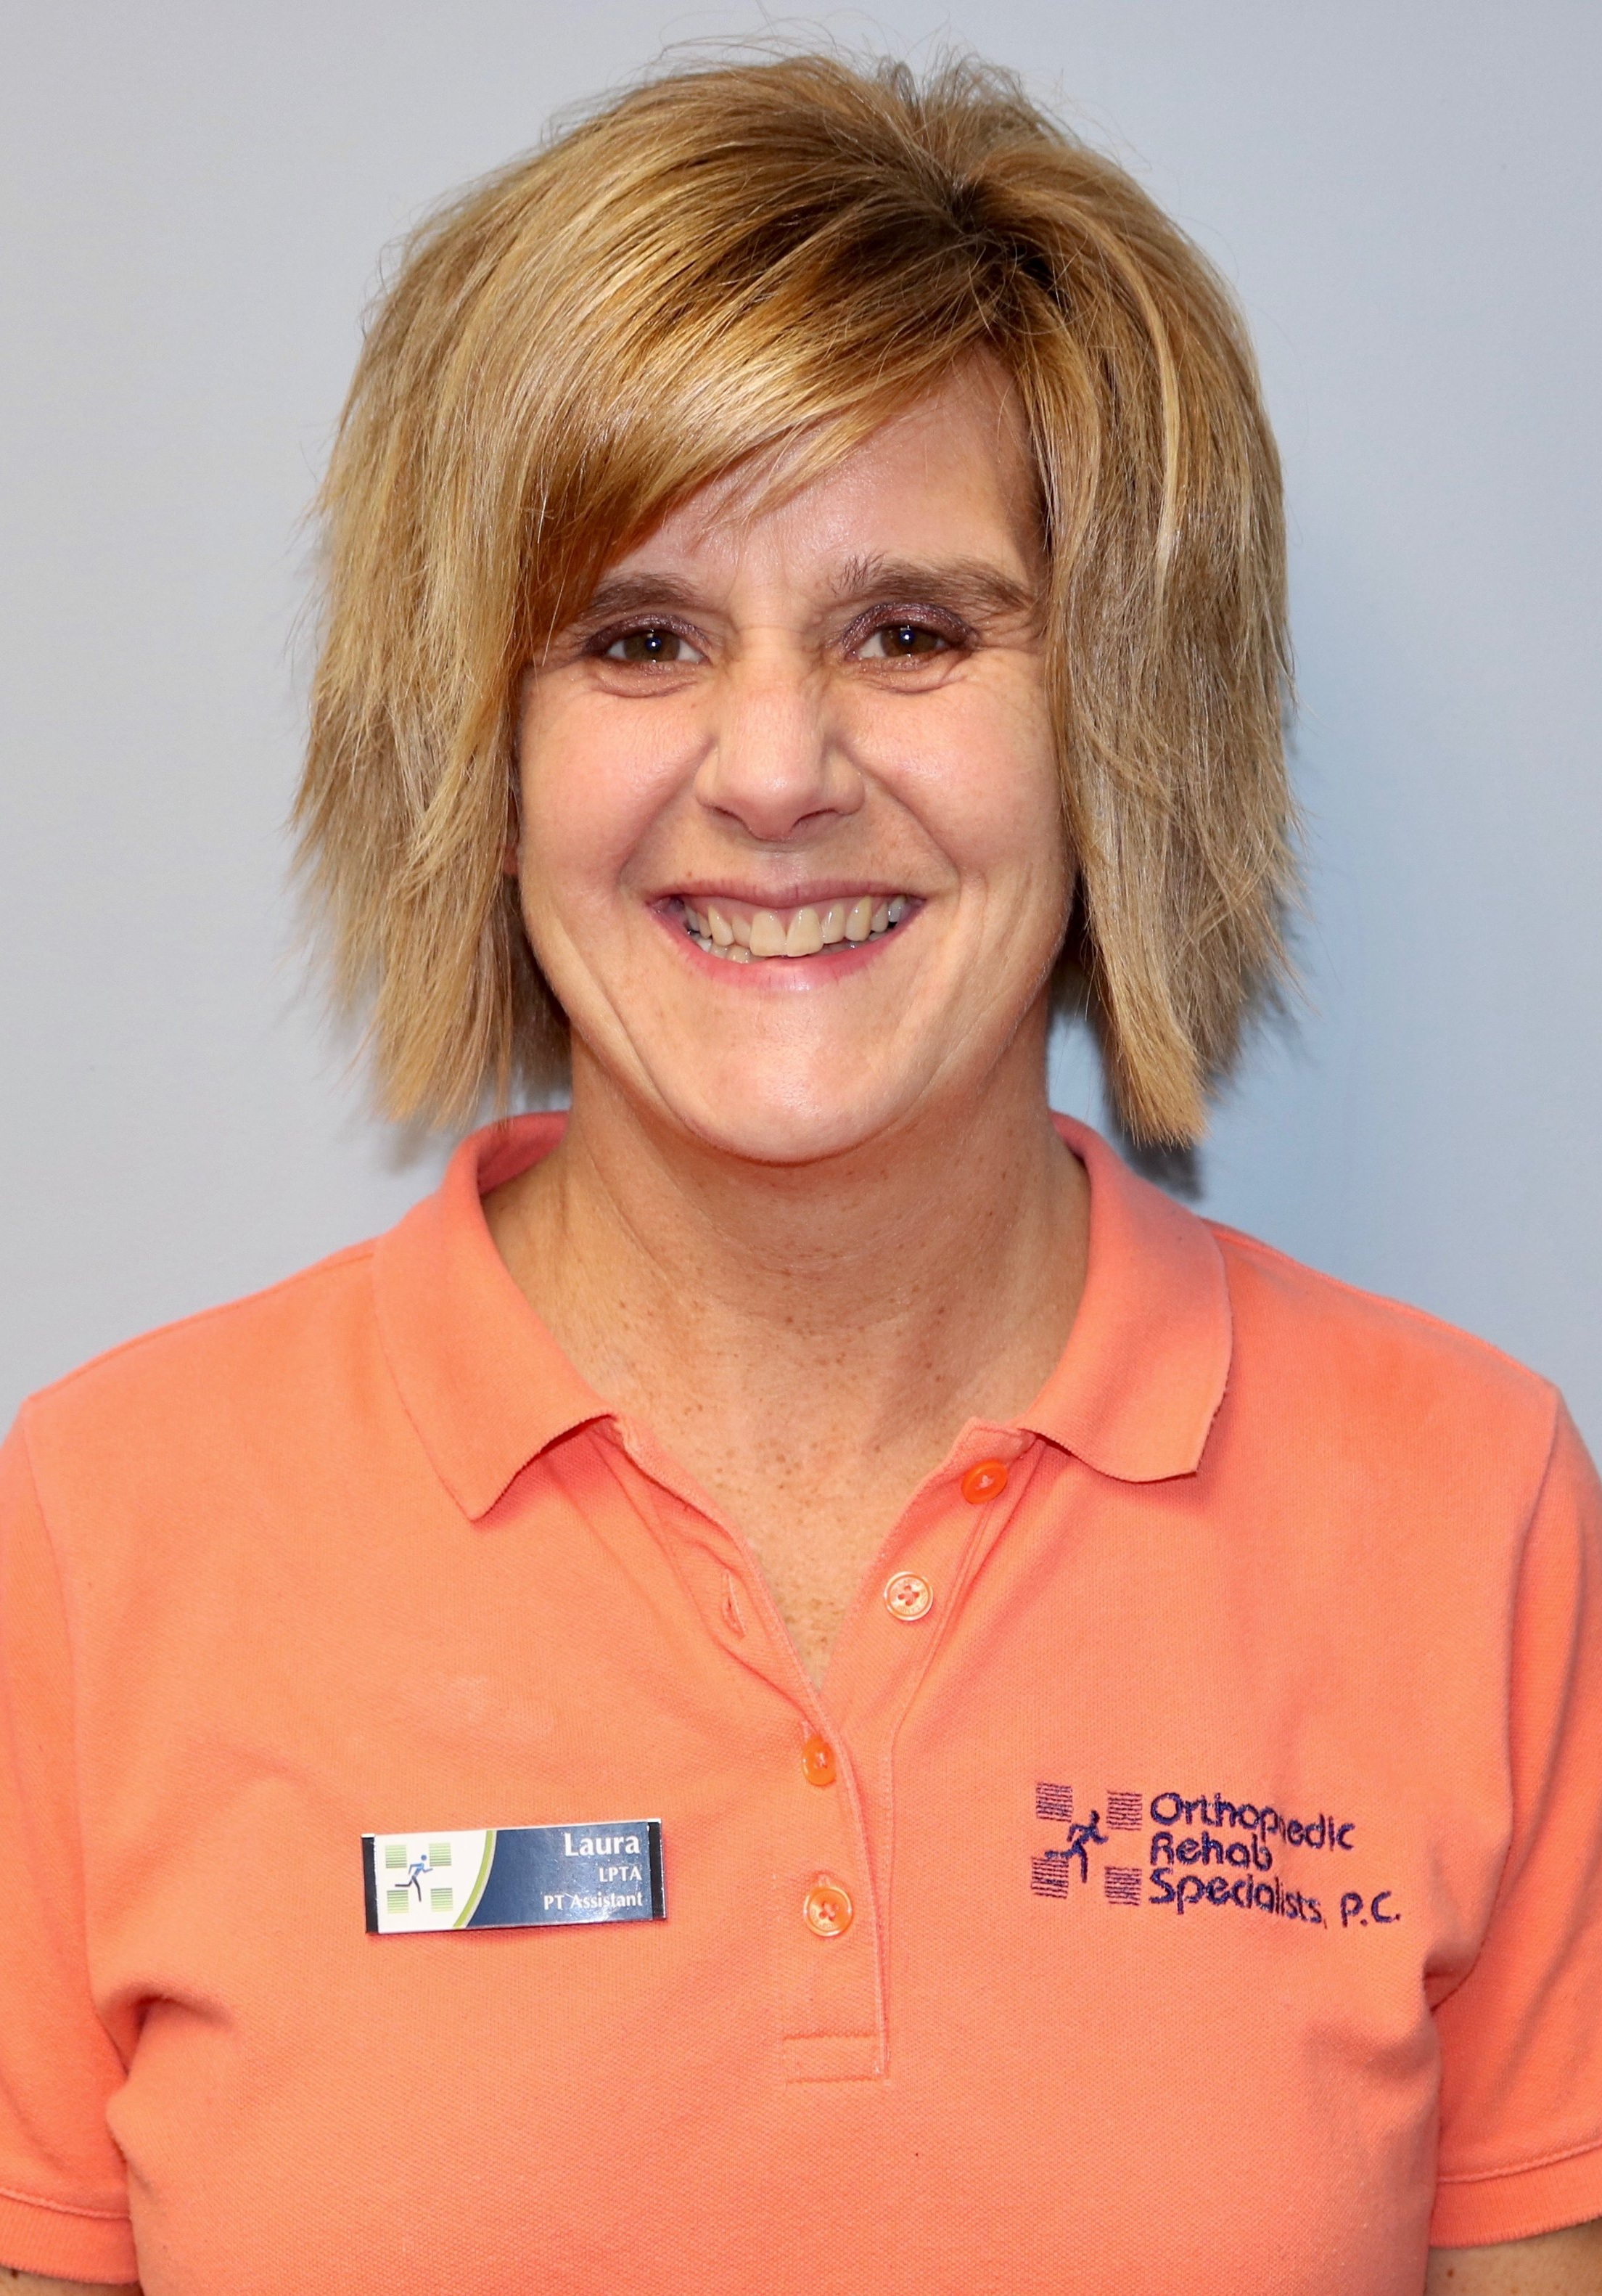 Laura Hause - PTA  East Clinic  Laura started at ORS in 1988 as a Therapy Aide. She received her Associate's Degree in Applied Science from Kellogg Community College in 1993. Laura has worked in various settings, including neuro rehab, home care, skilled nursing, and out-patient clinics. She enjoys working with many different diagnoses, but especially with total knee replacements, total hip replacements, and shoulder injuries and is trained in the Graston Technique®. When not working, Laura enjoys spending time with her husband and two daughters, who are very active in sports. She also enjoys outdoor activities, running, and swimming.